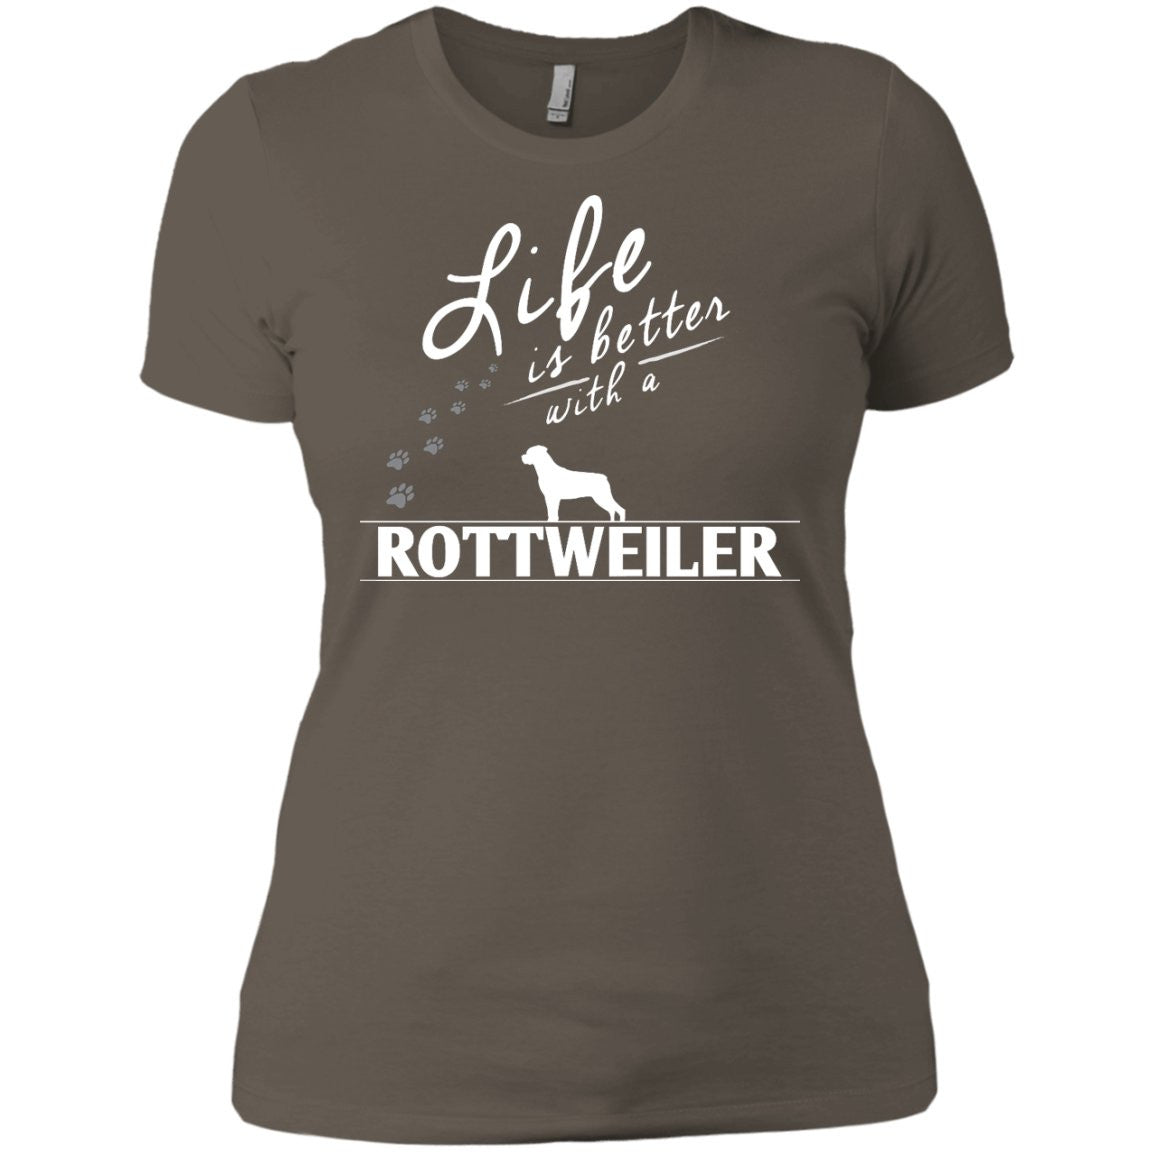 Rottweiler - Life Is Better With A Rottweiler Paws - Next Level Ladies' Boyfriend Tee